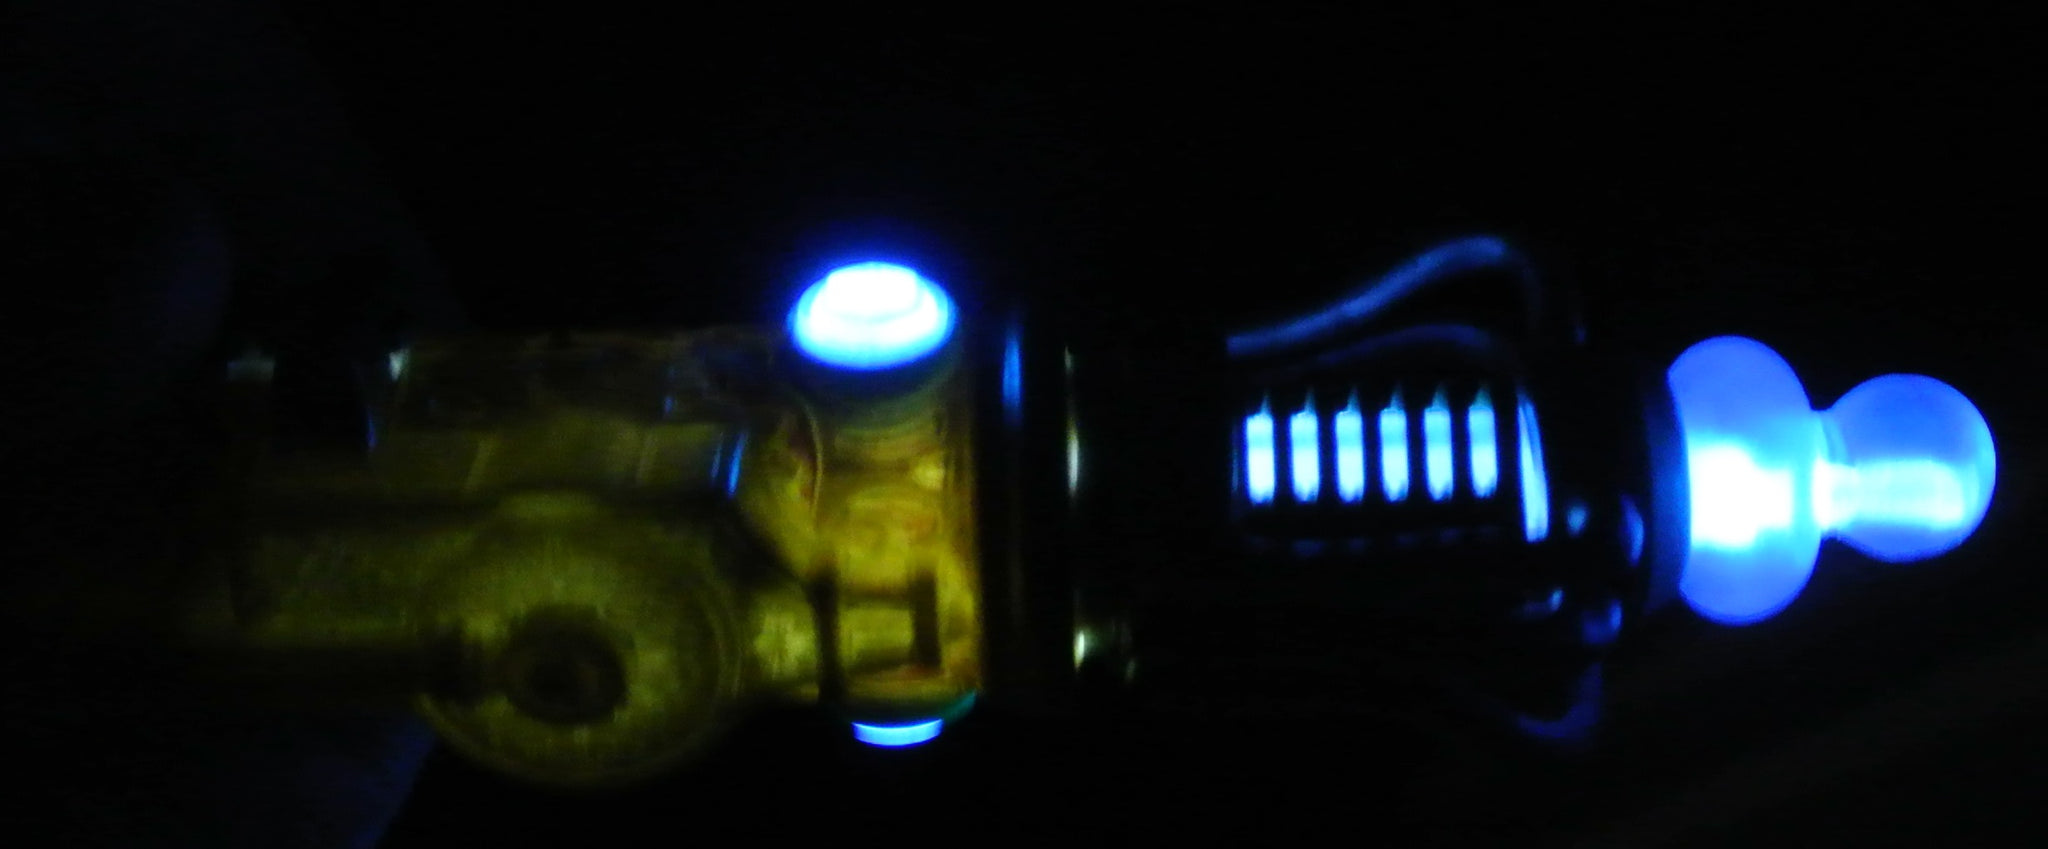 GOLD SWIRL DOCTOR WHO DR SONIC SCREWDRIVER LIGHTS UP WORKING 8 SOUNDS STARR WILDE STEAMPUNK FORTRESS COSPLAY COSTUME